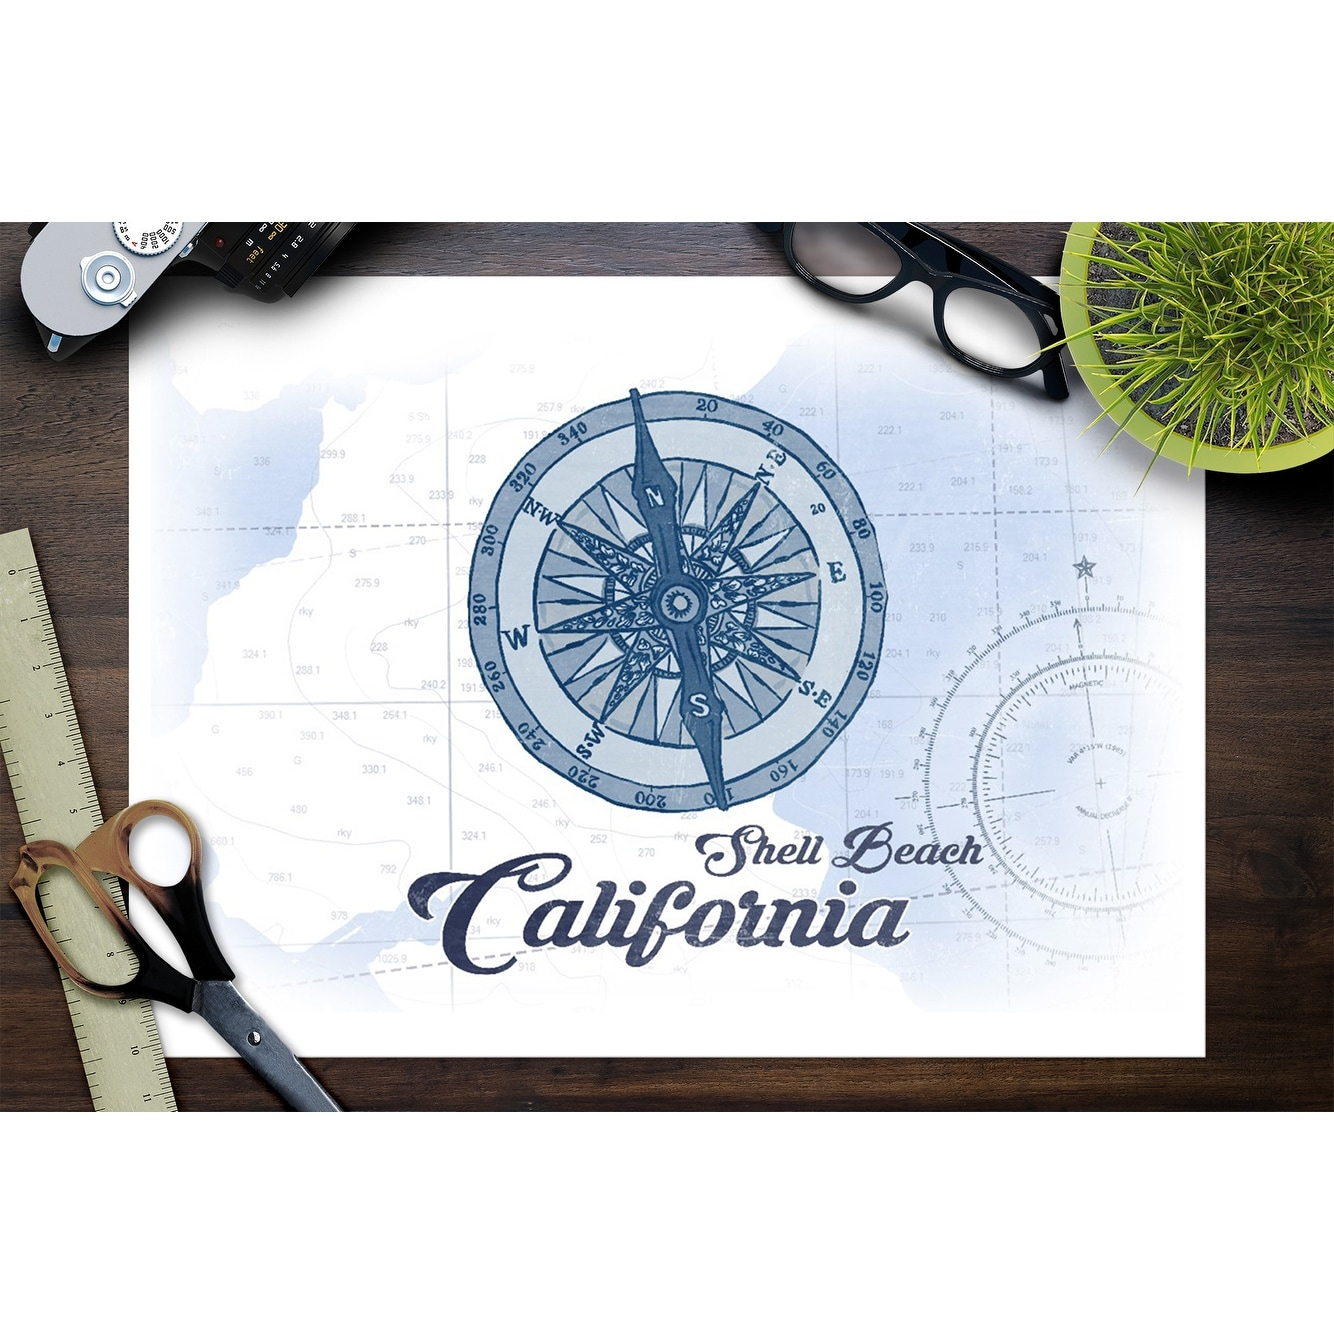 Shell Beach California Compass Blue Coastal Icon Lantern Press Artwork Art Print Multiple Sizes Available Overstock 27931699